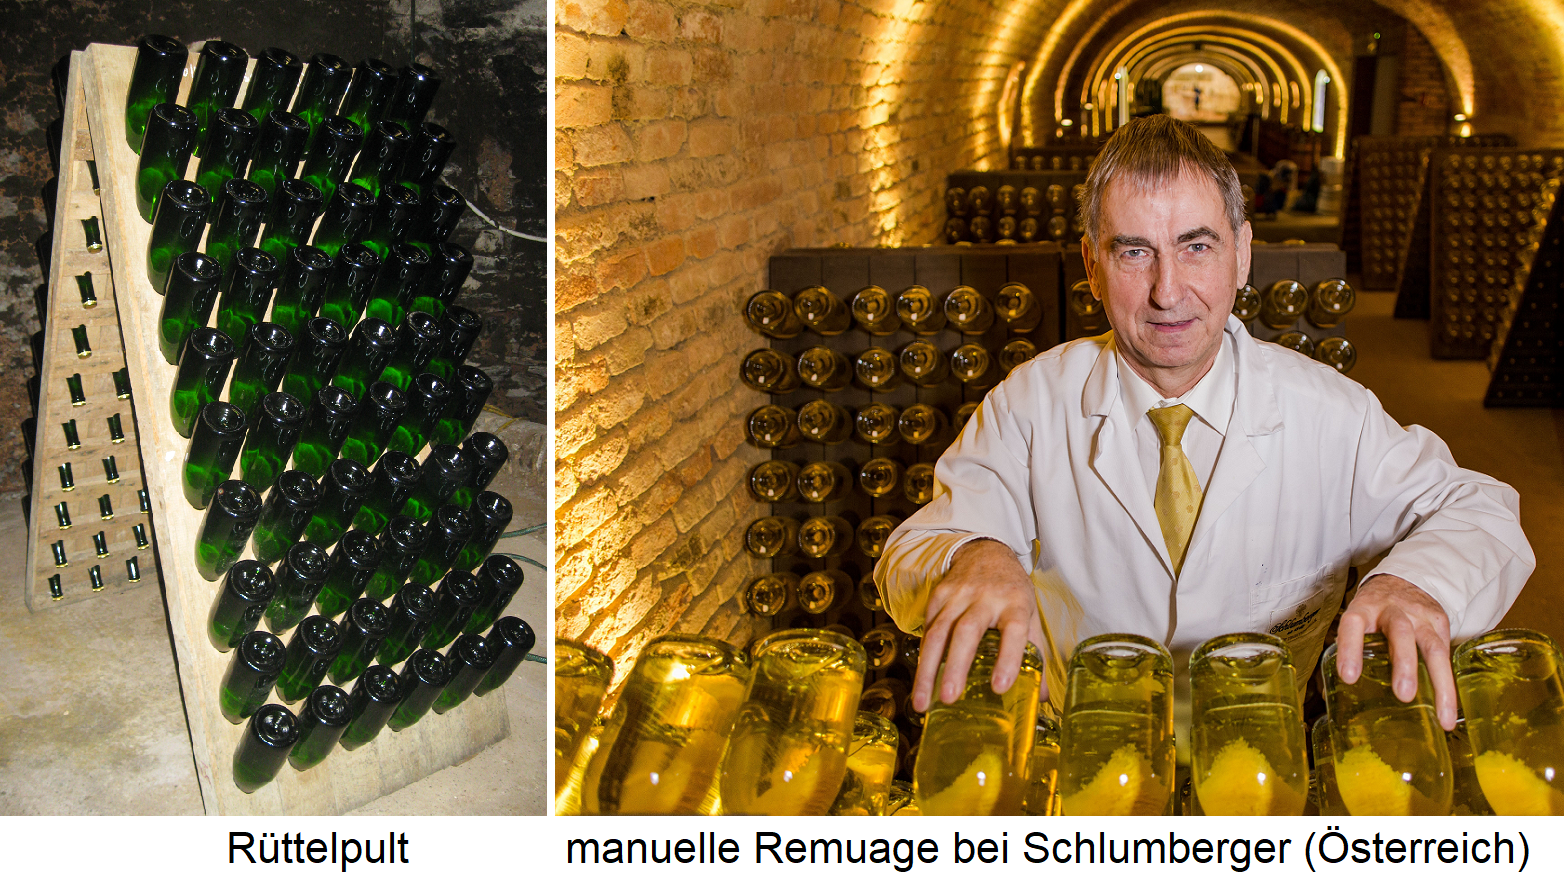 Champagne - Rüttelpult and manual Remuage